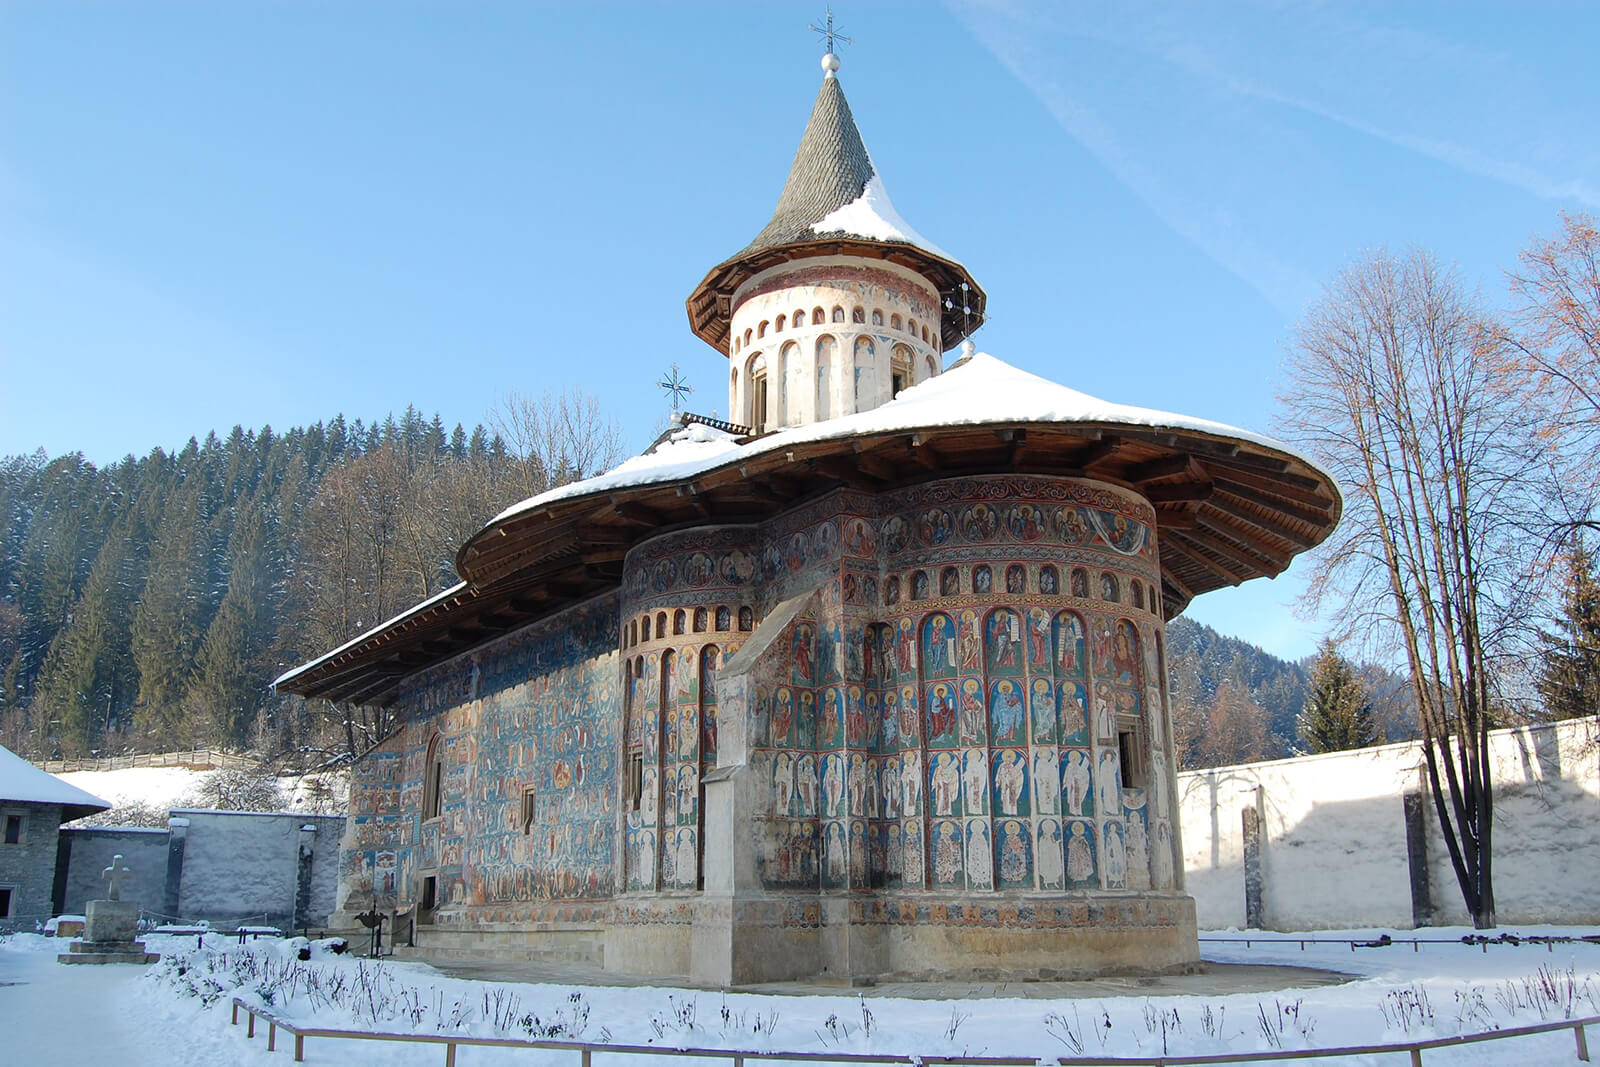 The elaborate, intricately painted monasteries in Bucovina, Romania are a must visit destination for fans of history, art or the Byzantine empire